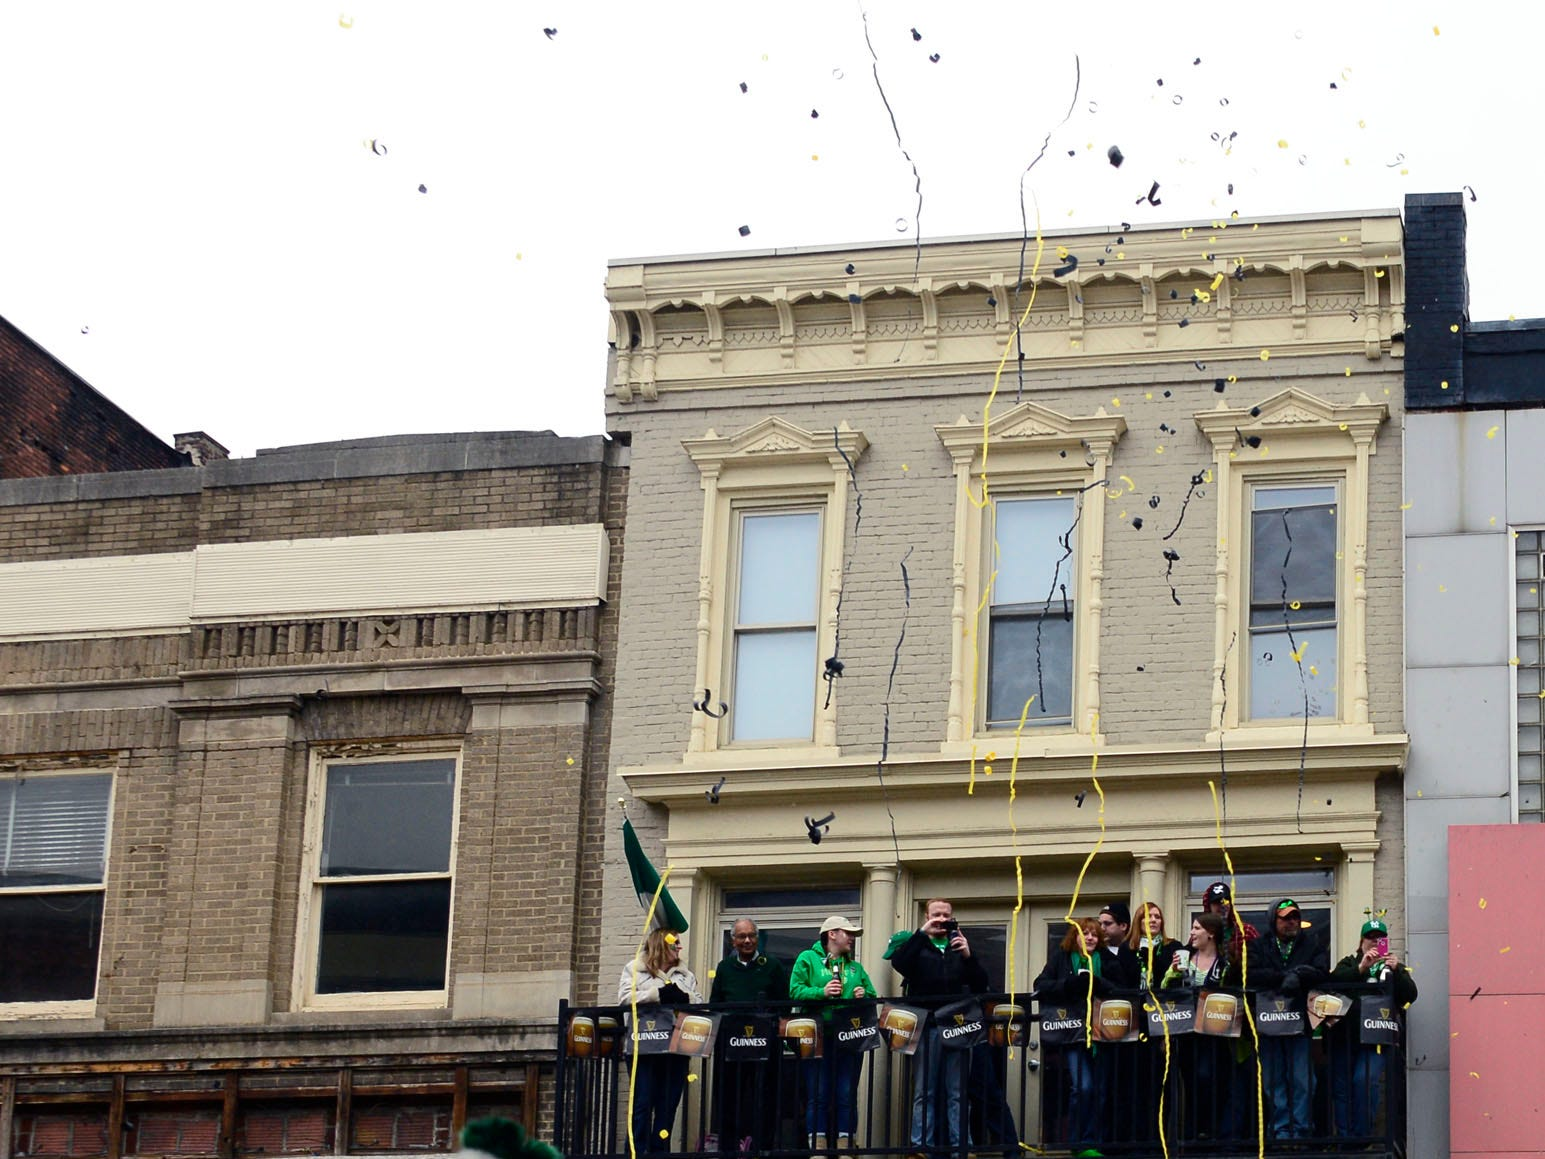 2013: Crowds shoot confetti into the air as the Ladies From Hell Pipe Band passes by during the St. Patrick's parade in Binghamton on Saturday, March 2, 2013.